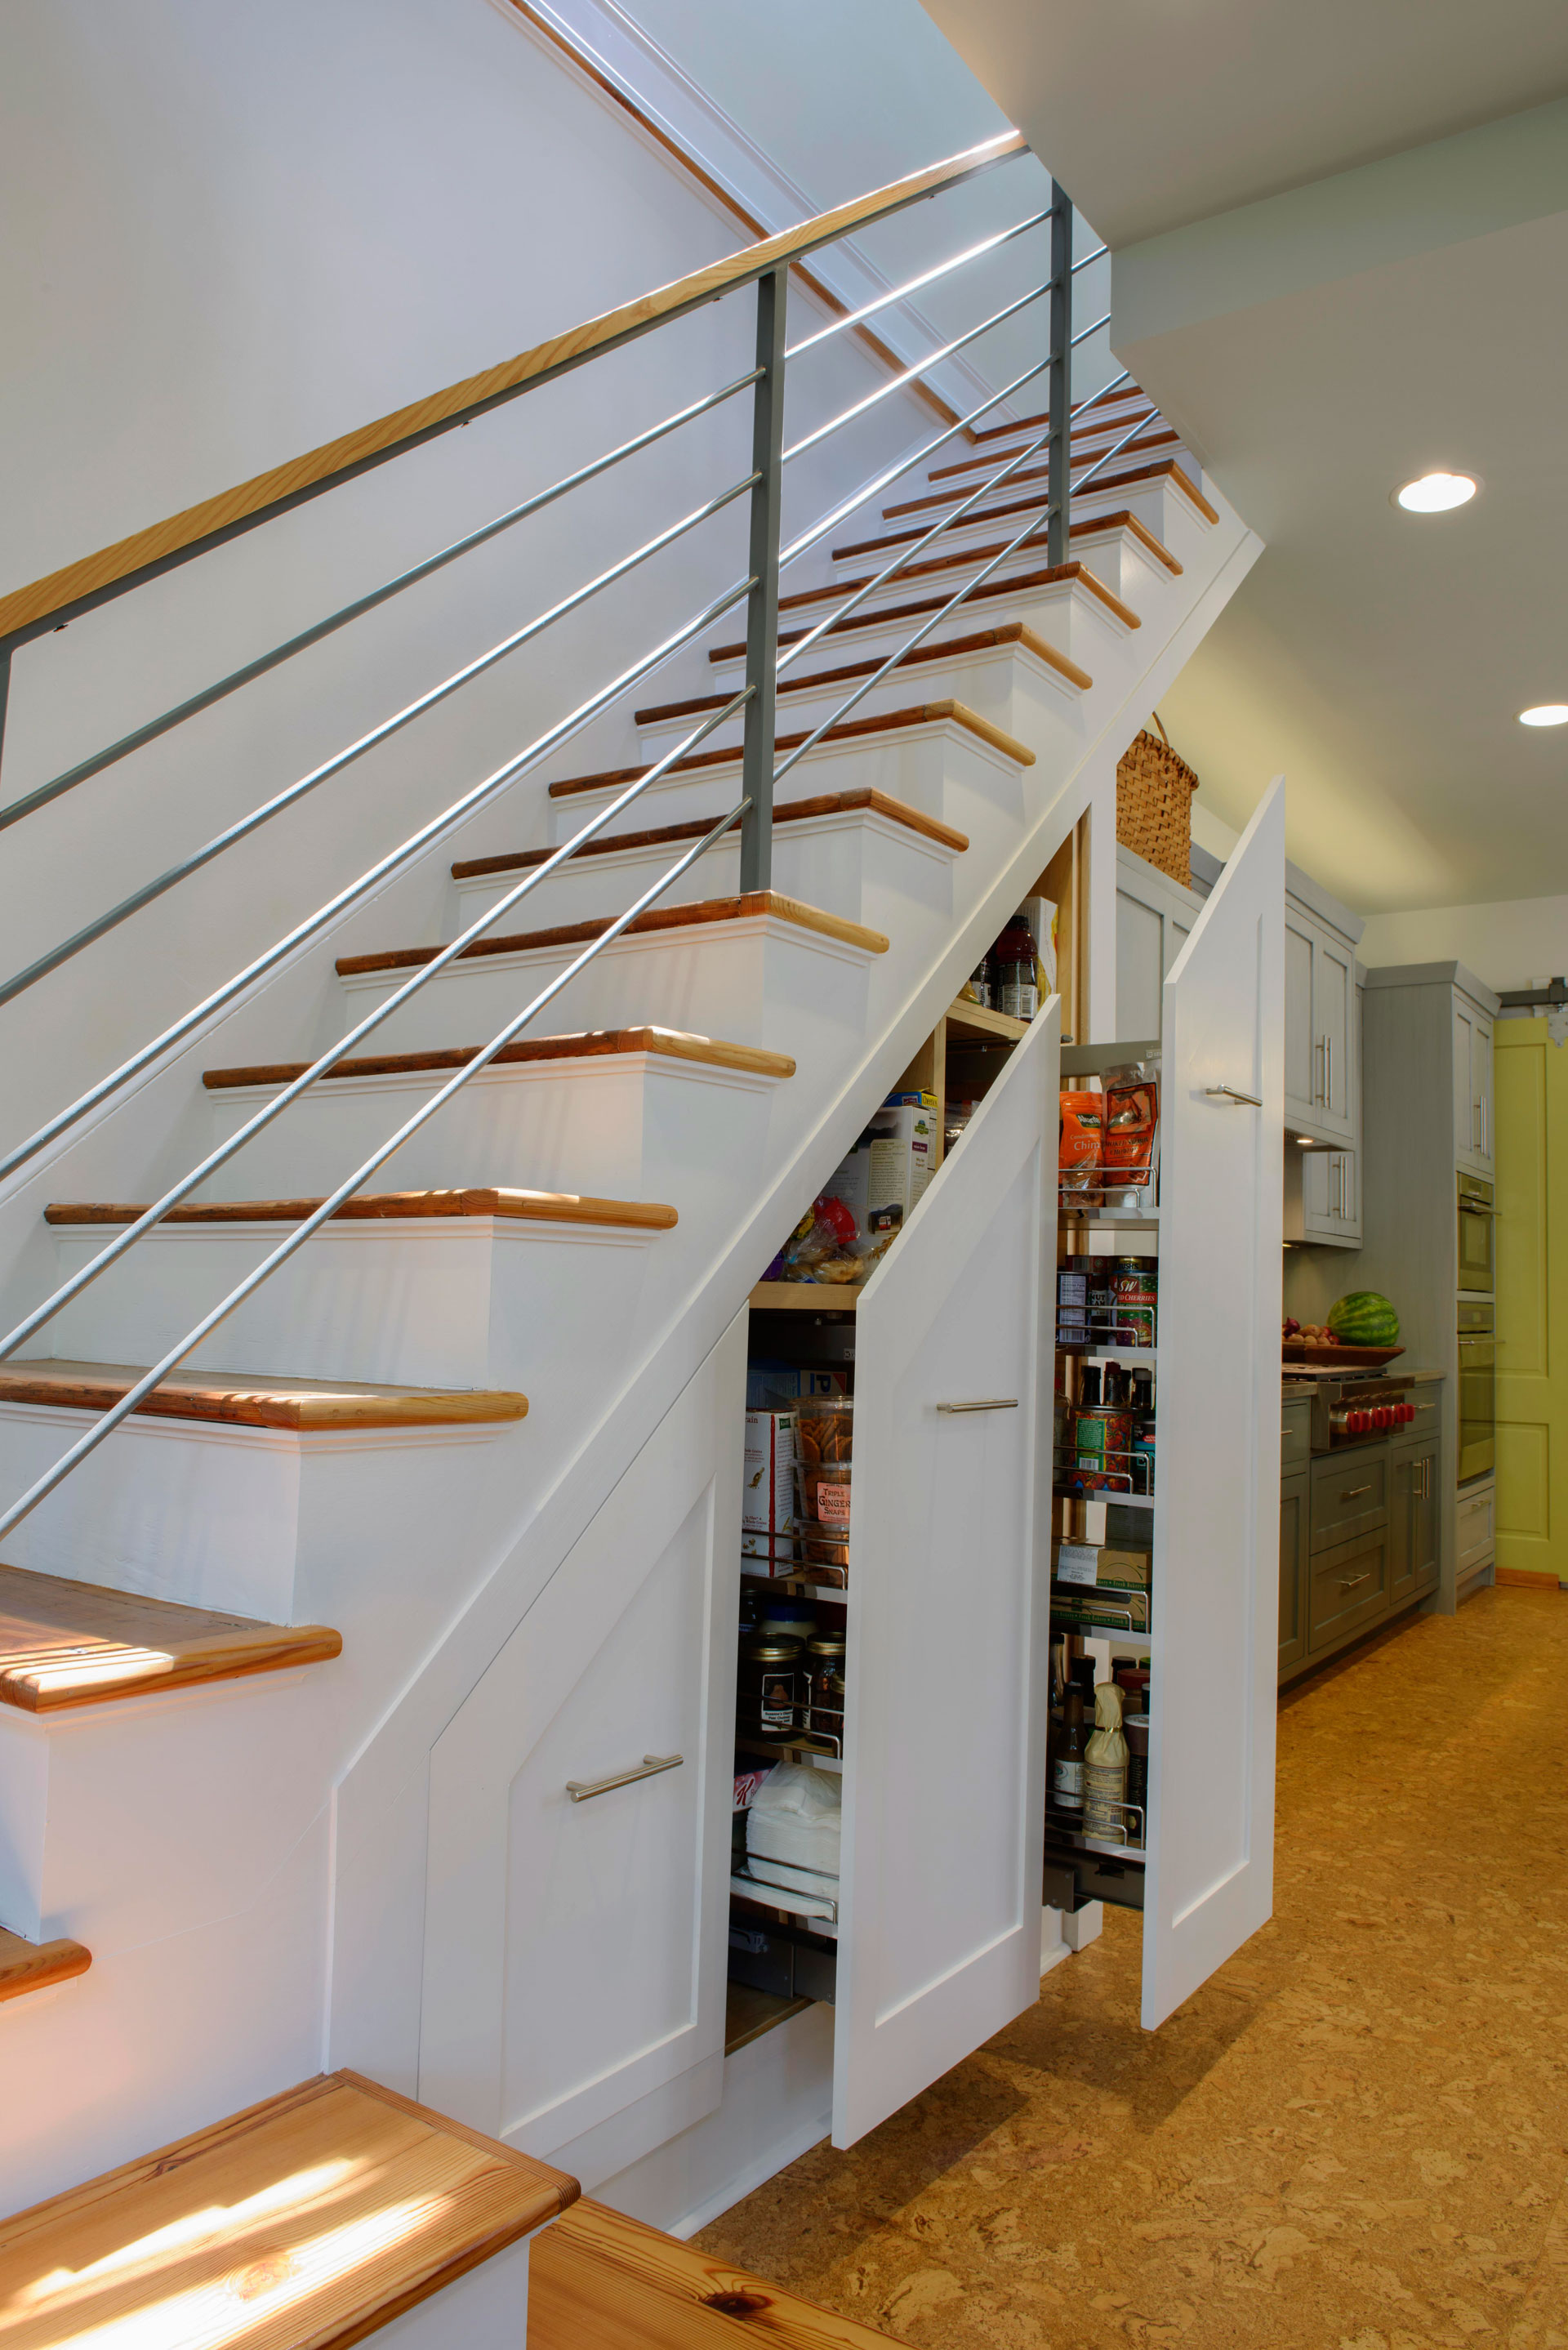 Under the stairs slide out pantry